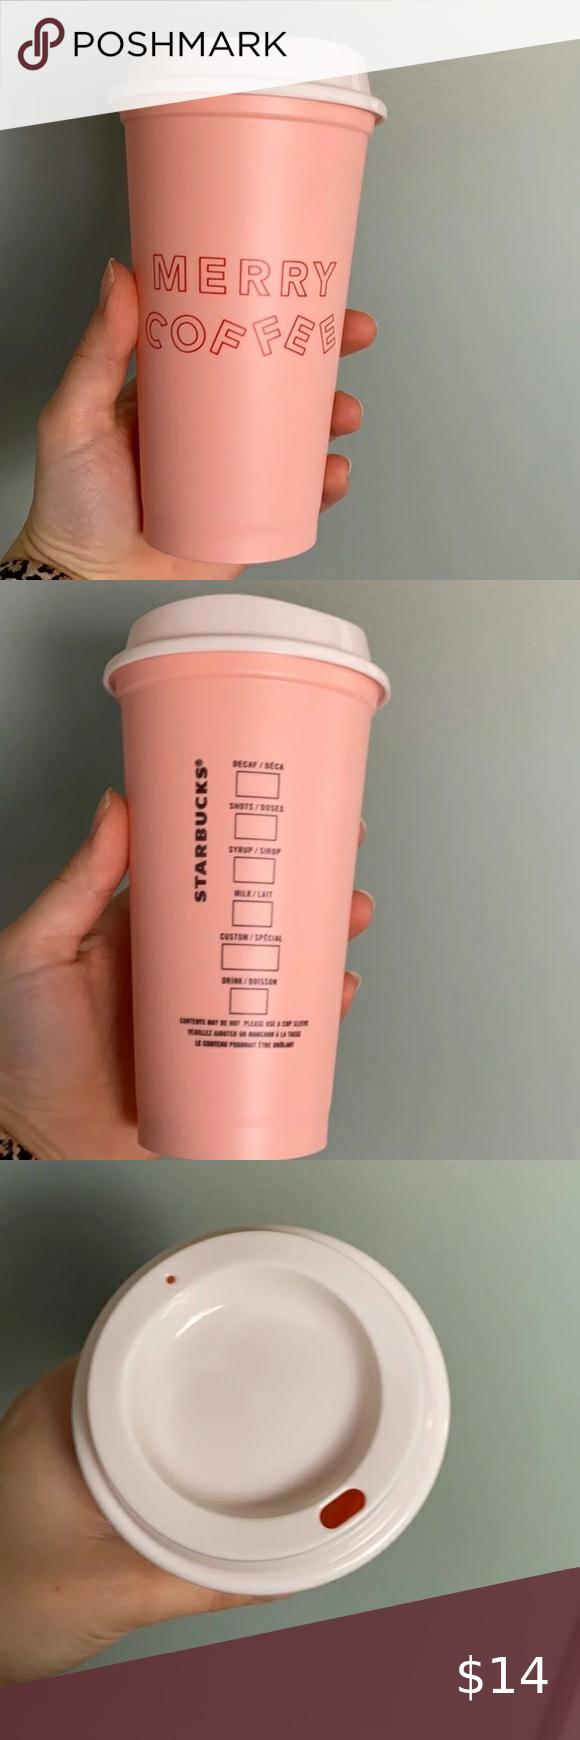 NEW Starbucks reusable coffee cup in 2020 Reusable